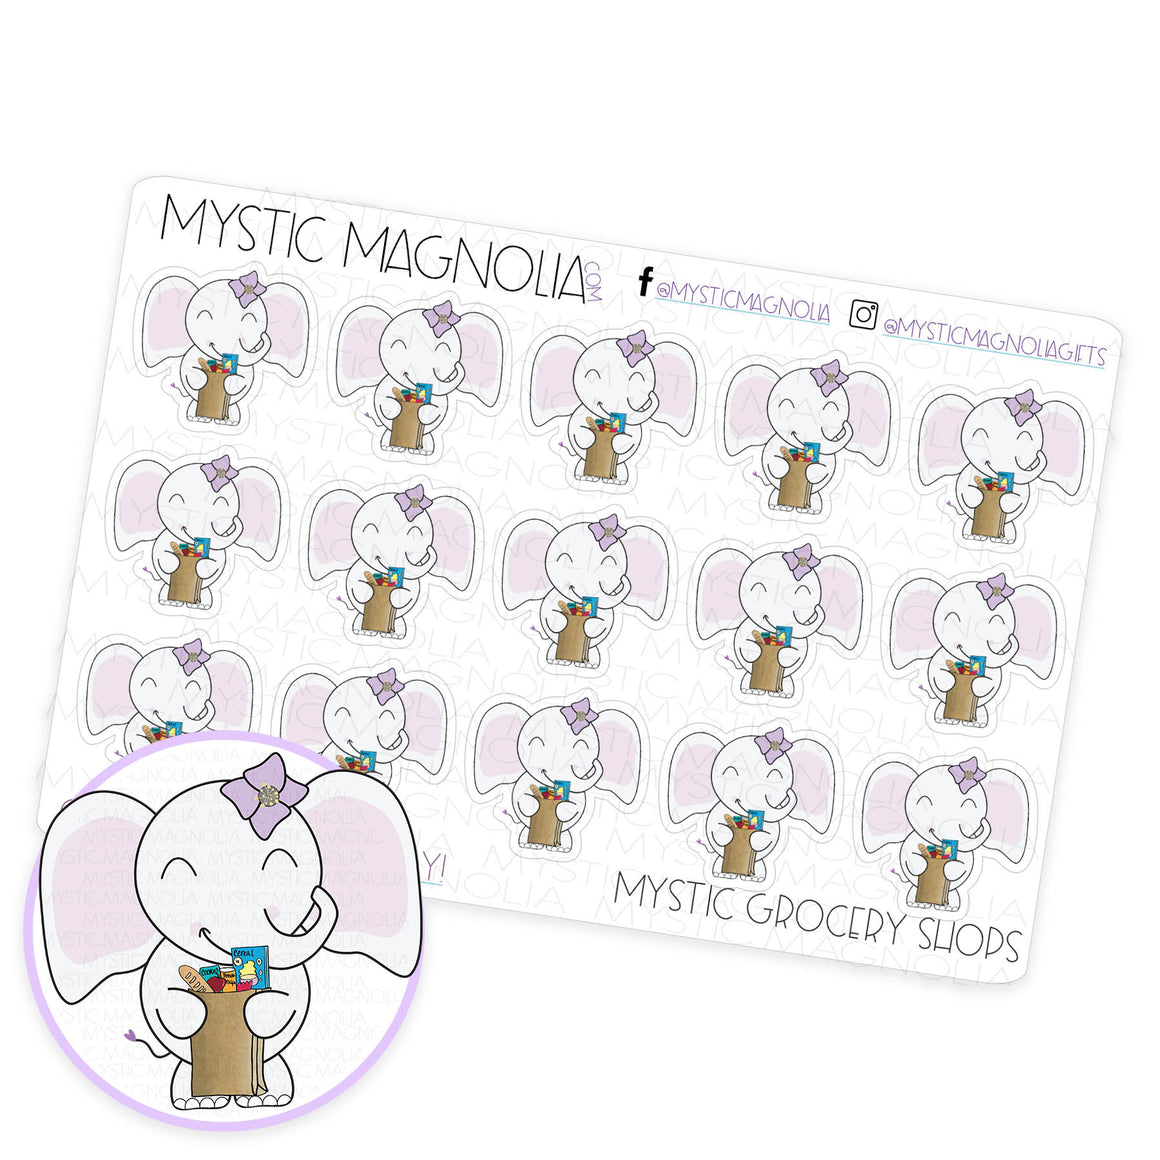 Mystic Grocery Shops Planner Sticker Sheet